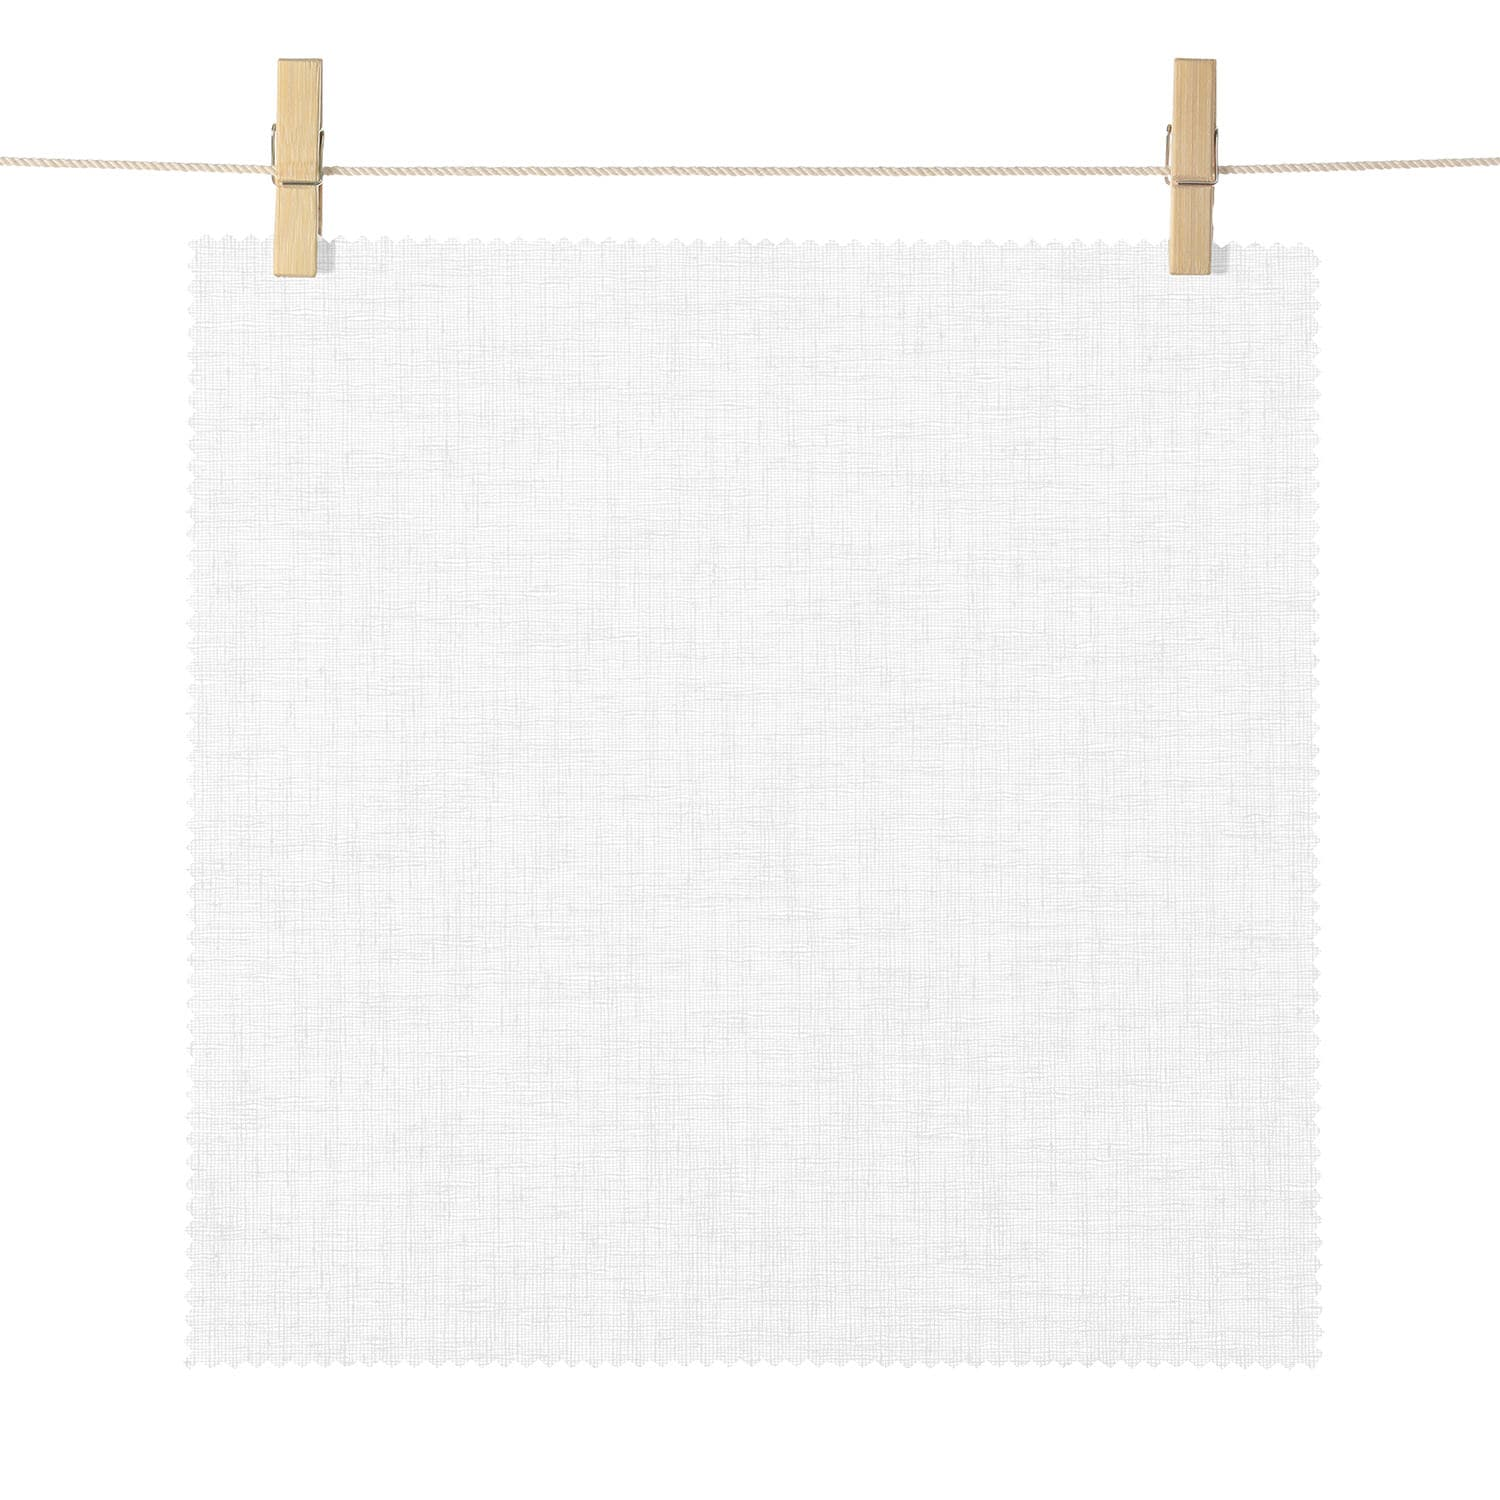 Hawthorn Cream Canton Crepe Textured Semi Sheer Roller Shade Swatch